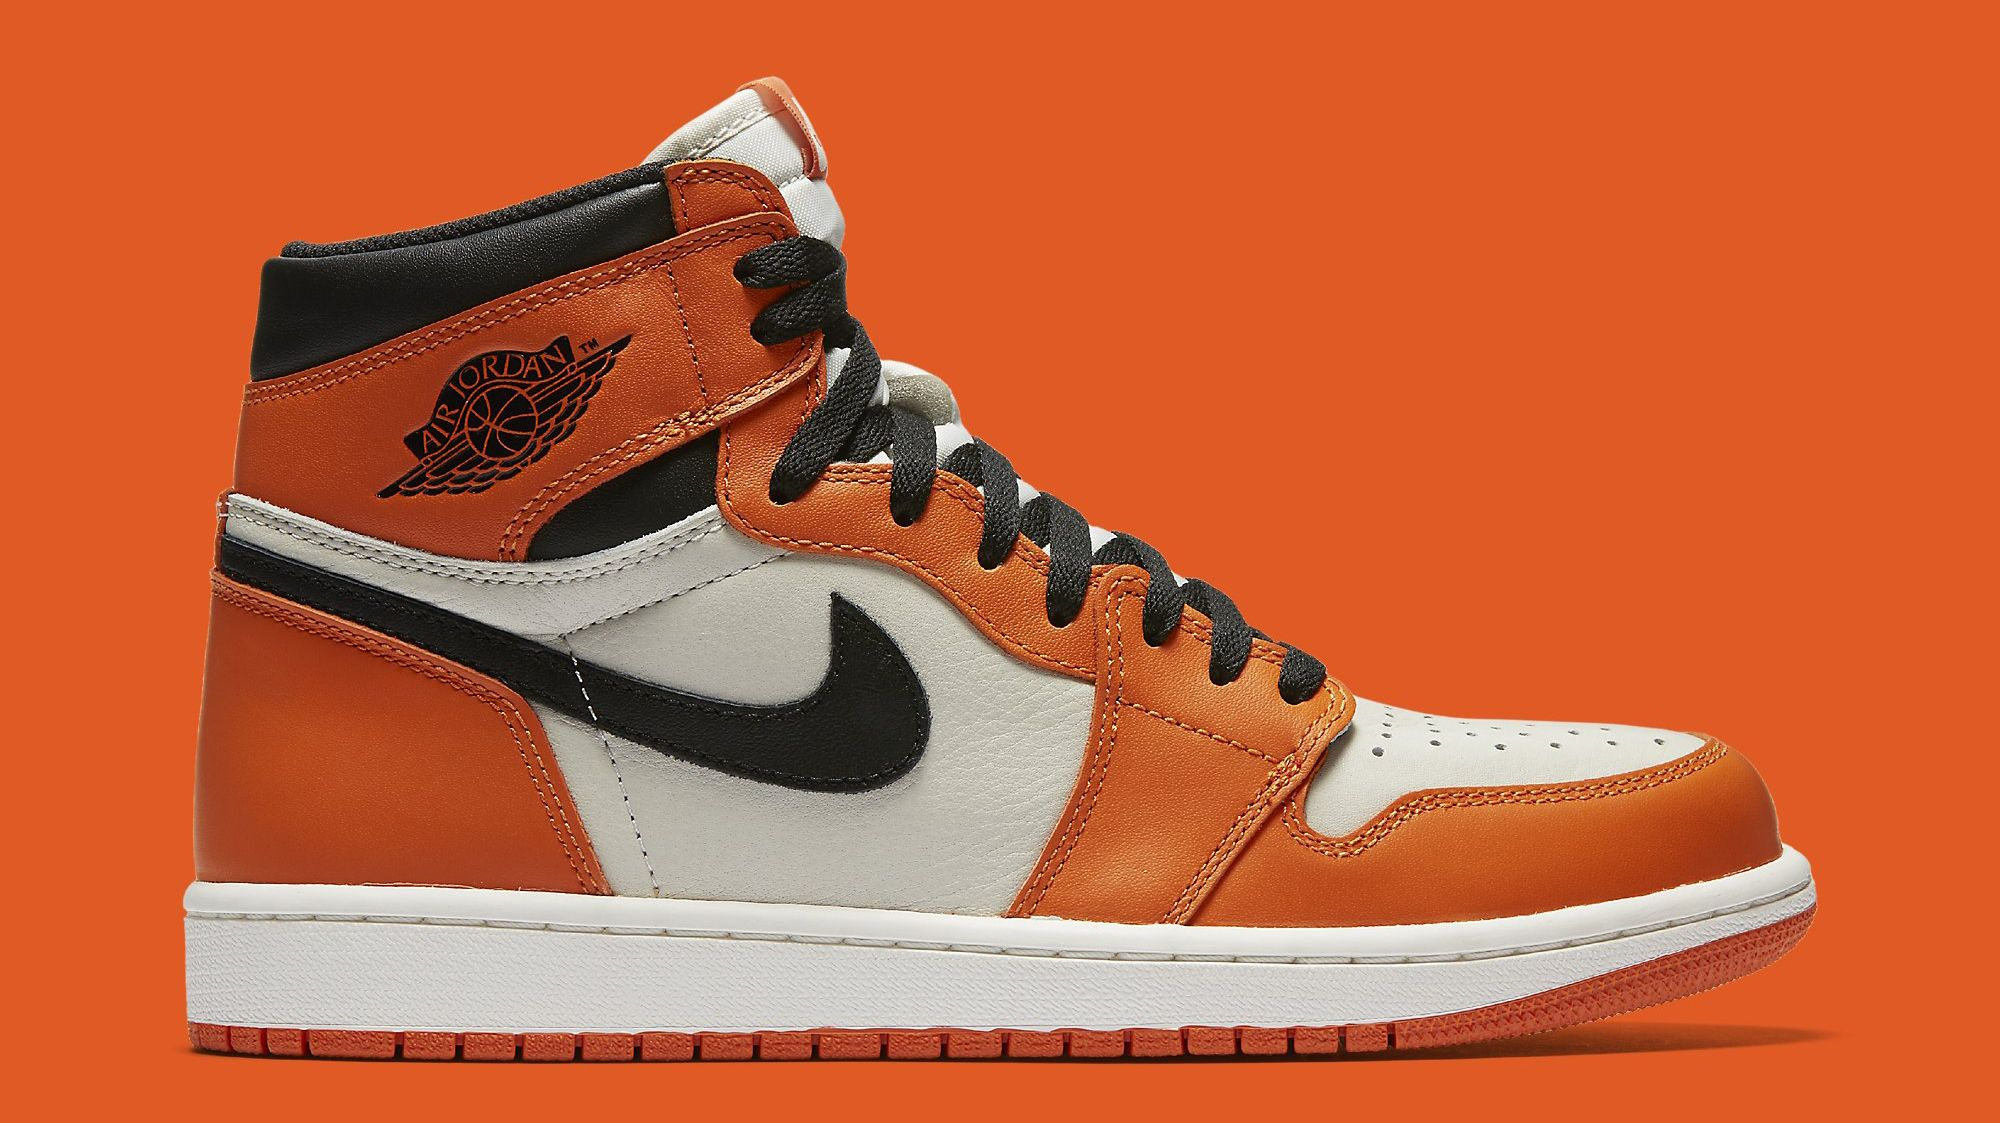 fd6f1234ea8 Air Jordan 1 Shattered Backboard Away 555088-113 Profile | Jordan 1s ...